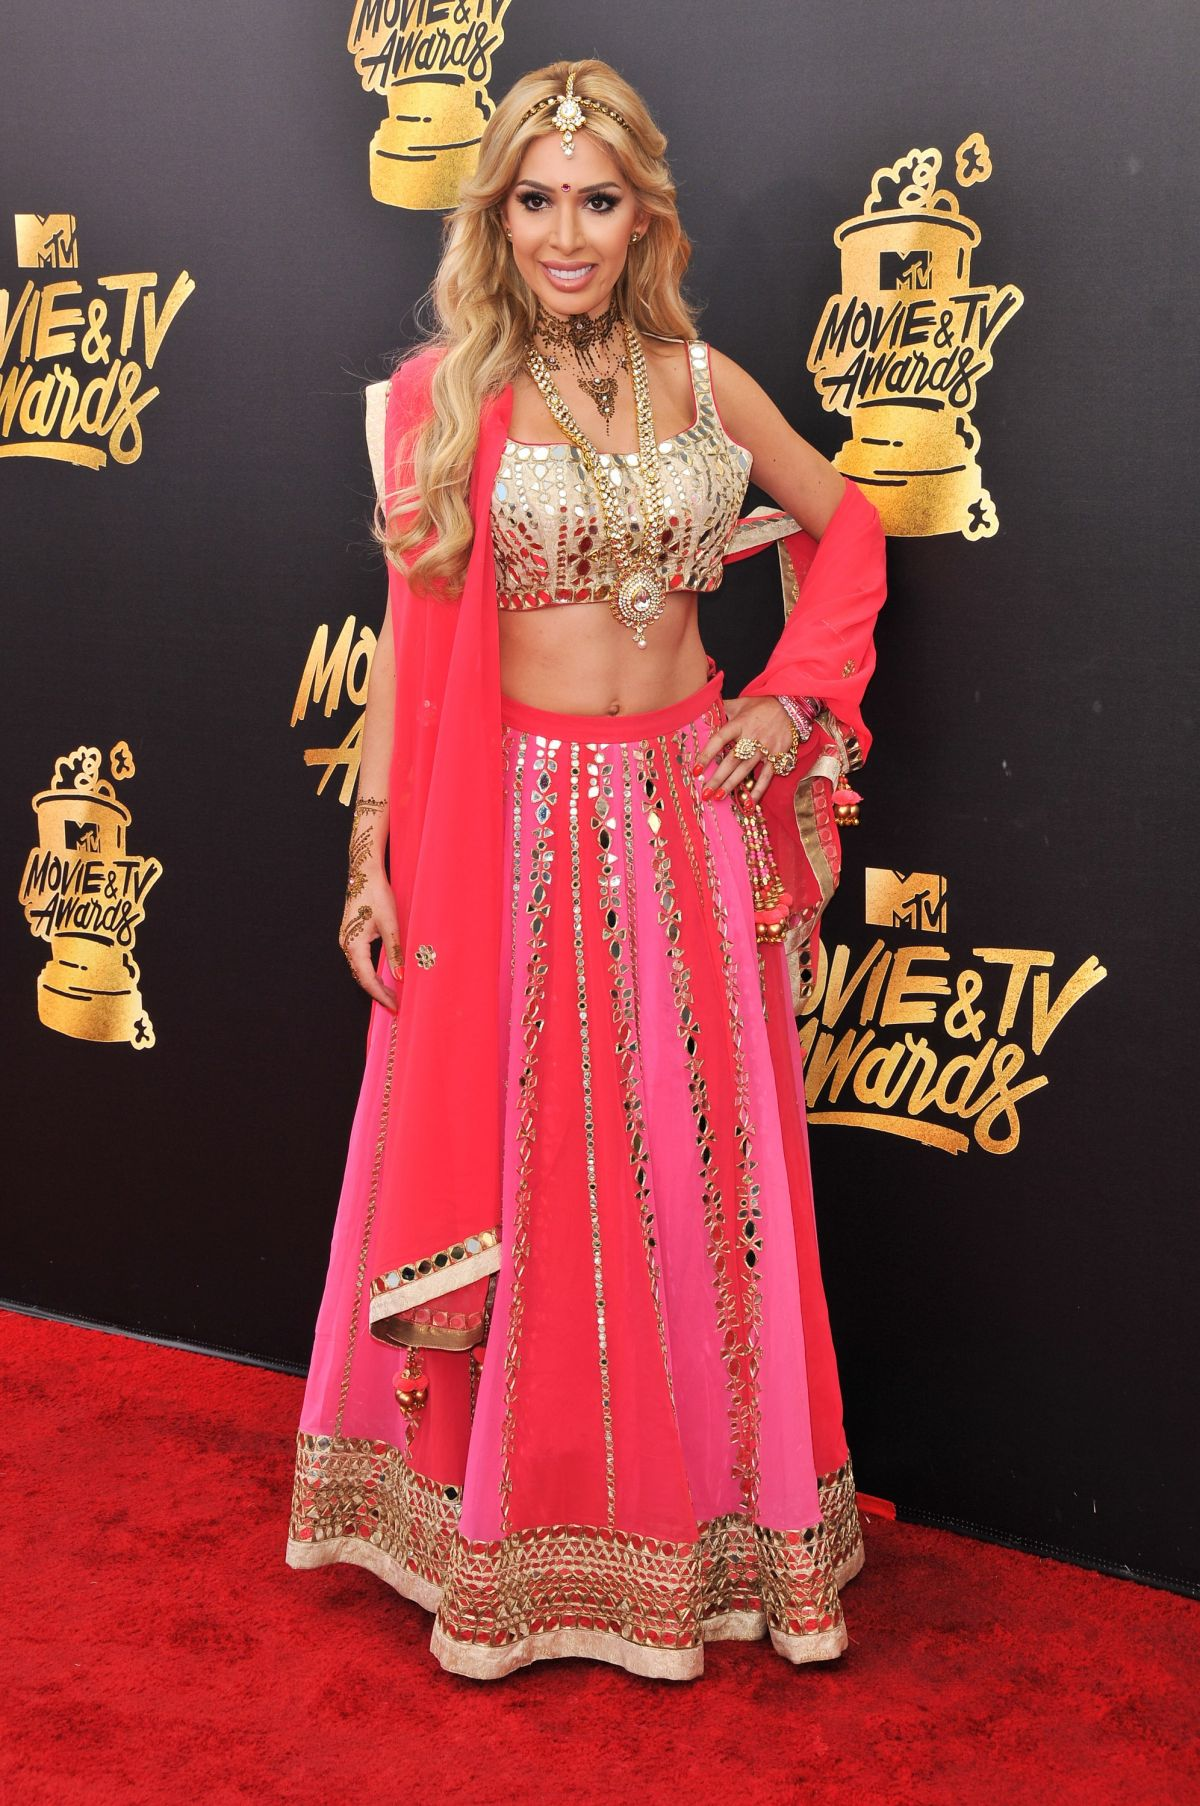 FARRAH ABRAHAM at 2017 MTV Movie & TV Awards in Los Angeles 05/07/2017